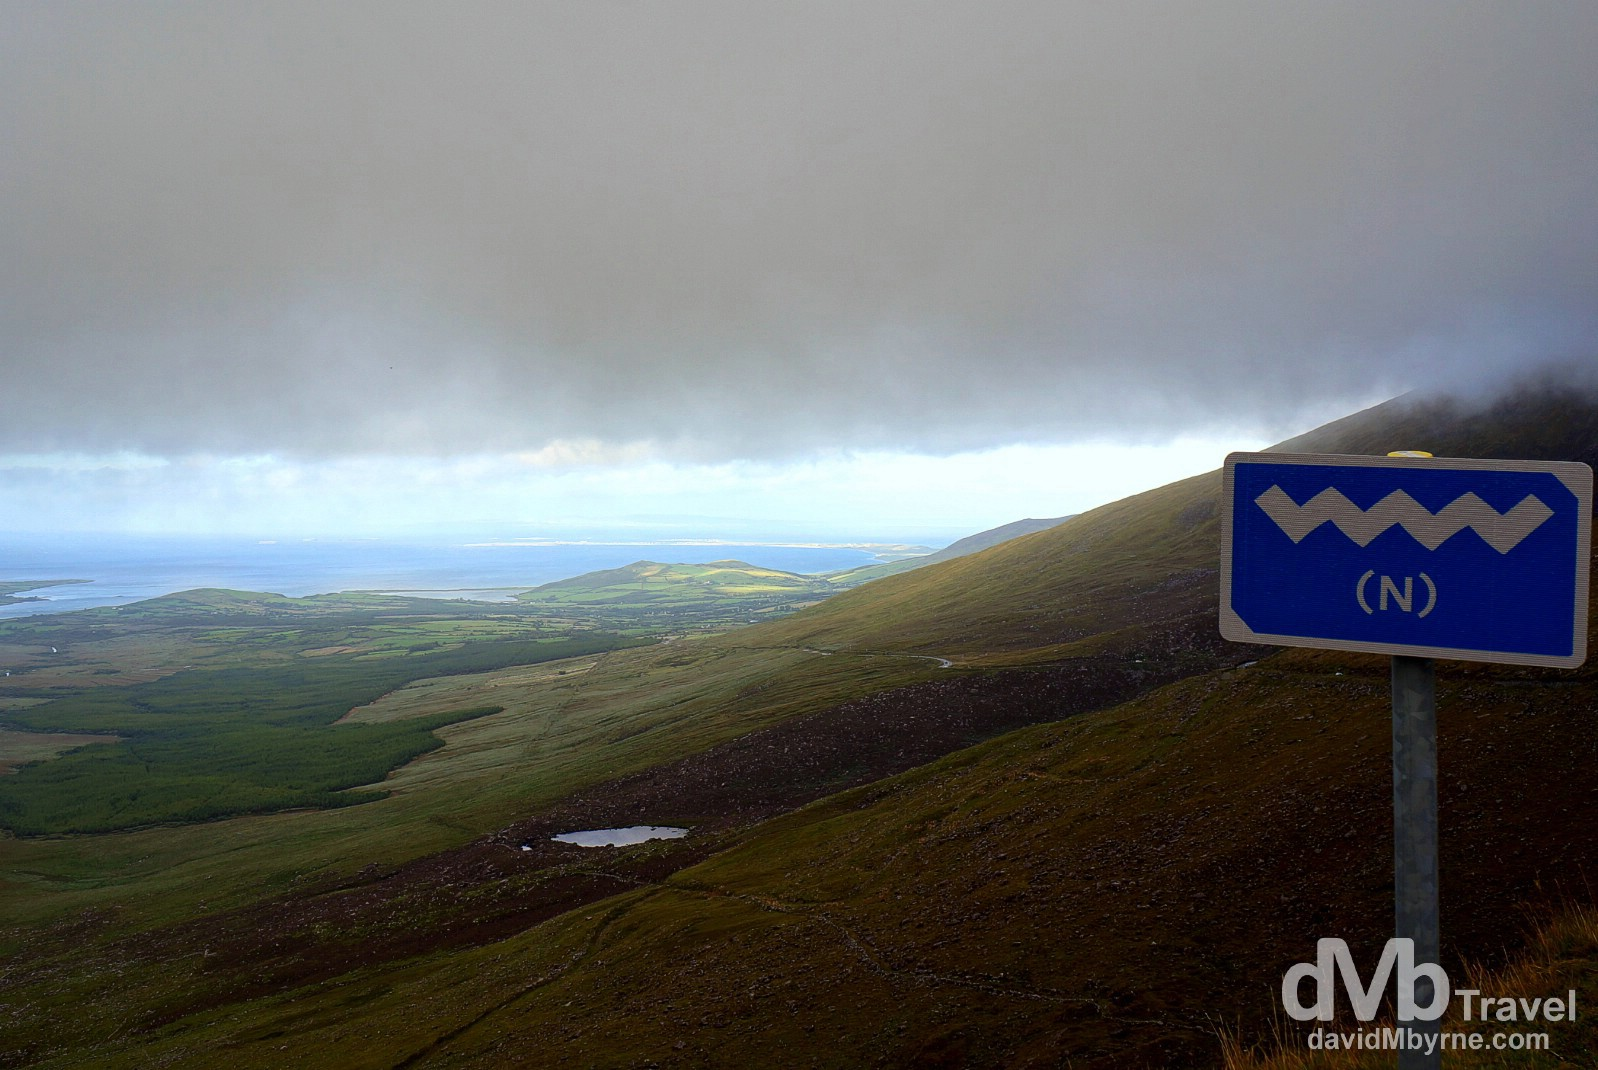 Wild Atlantic Way signage & ominous clouds hanging over the Conor Pass, the highest mountain pass in Ireland. Dingle Peninsula, Co. Kerry, Ireland. August 27, 2014.